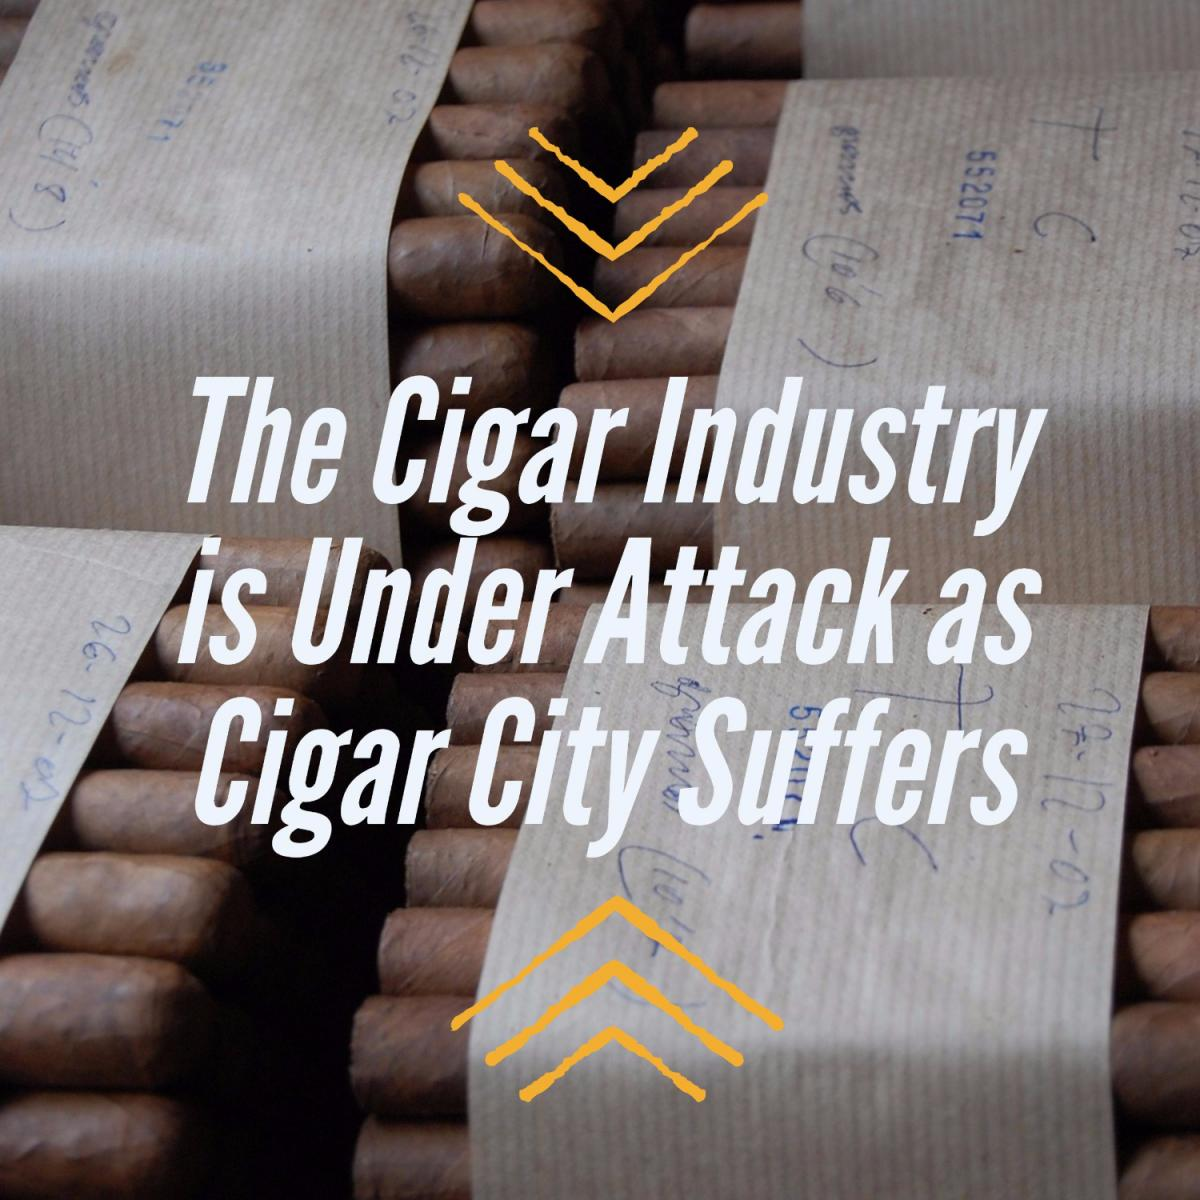 The Cigar Industry is Under Attack as Cigar City Suffers